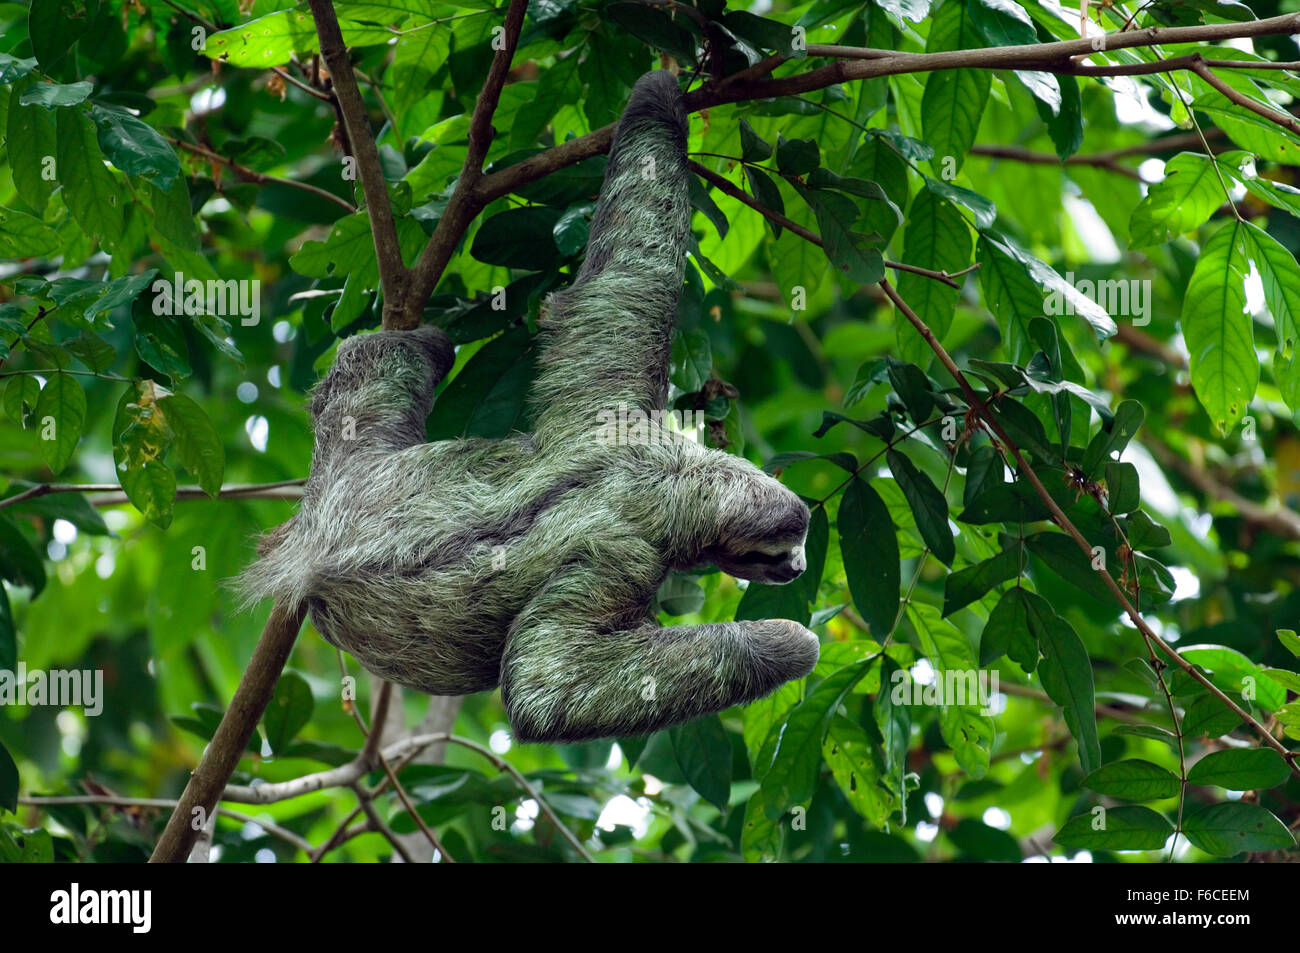 Brown-throated sloth / three-toed sloth (Bradypus variegatus) foraging in tree, Central America Stock Photo